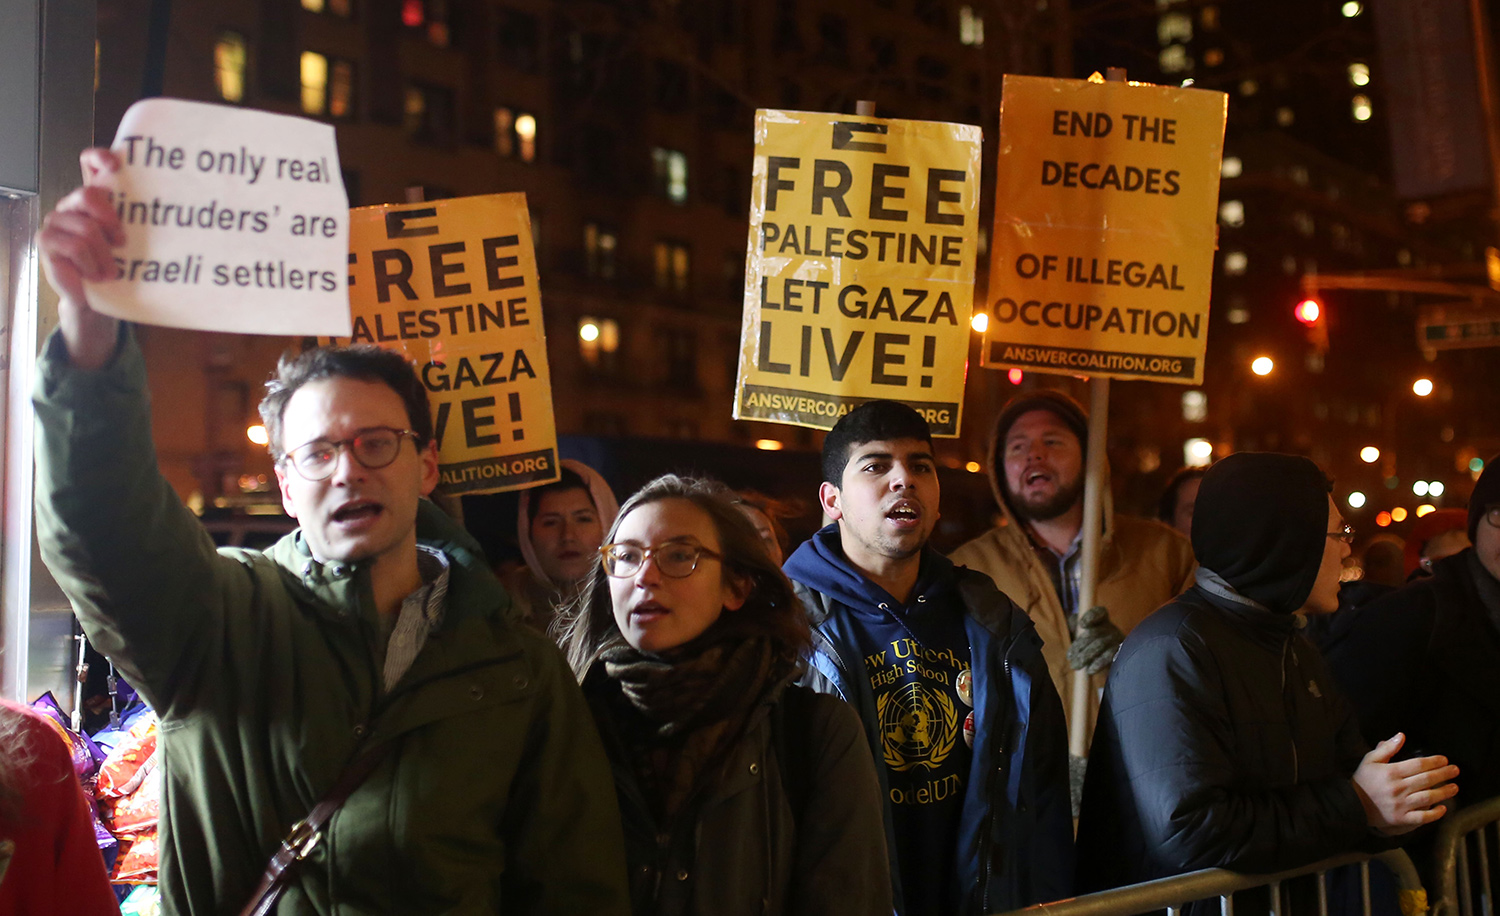 A group of students at Columbia University protest the visit there of Israel's Ambassador to the United Nations on February 13, 2017. Mohammed Elshamy/Anadolu Agency/Getty Images.